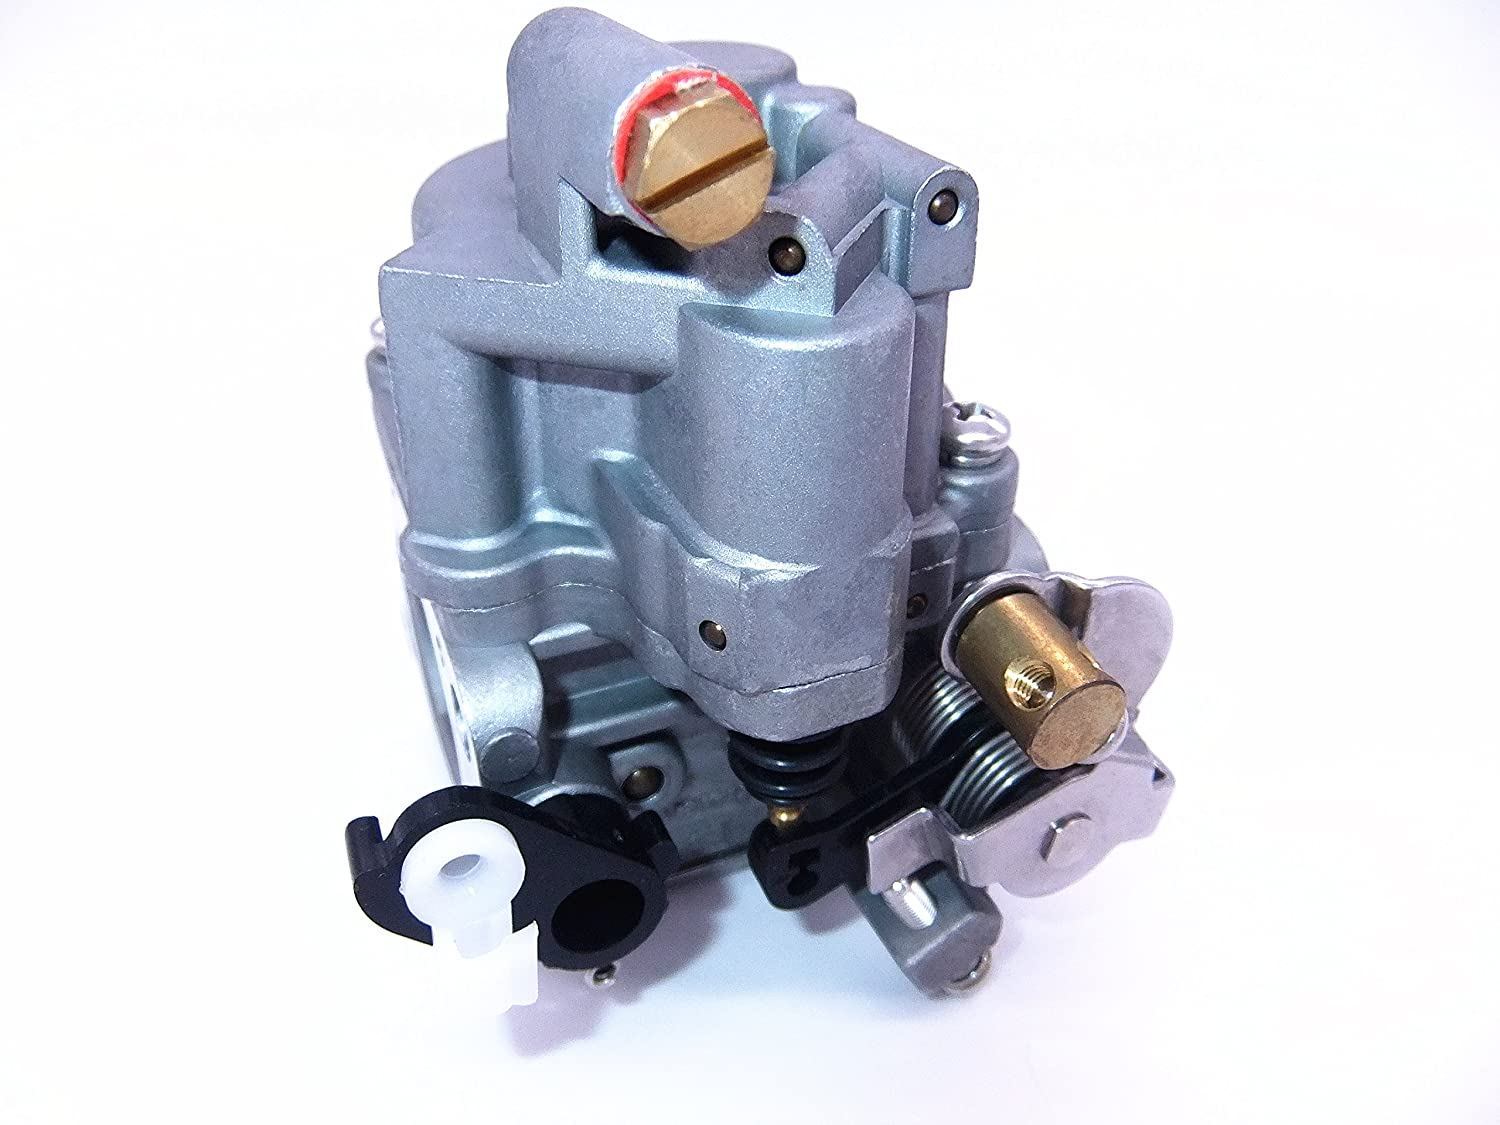 Amazon.com: SouthMarine Boat Motor Carbs Carburetor Assy 68T-14301-11-00  for Yamaha 4-Stroke 8hp 9.9hp F8M F9.9M Outboard Motors: Sports & Outdoors